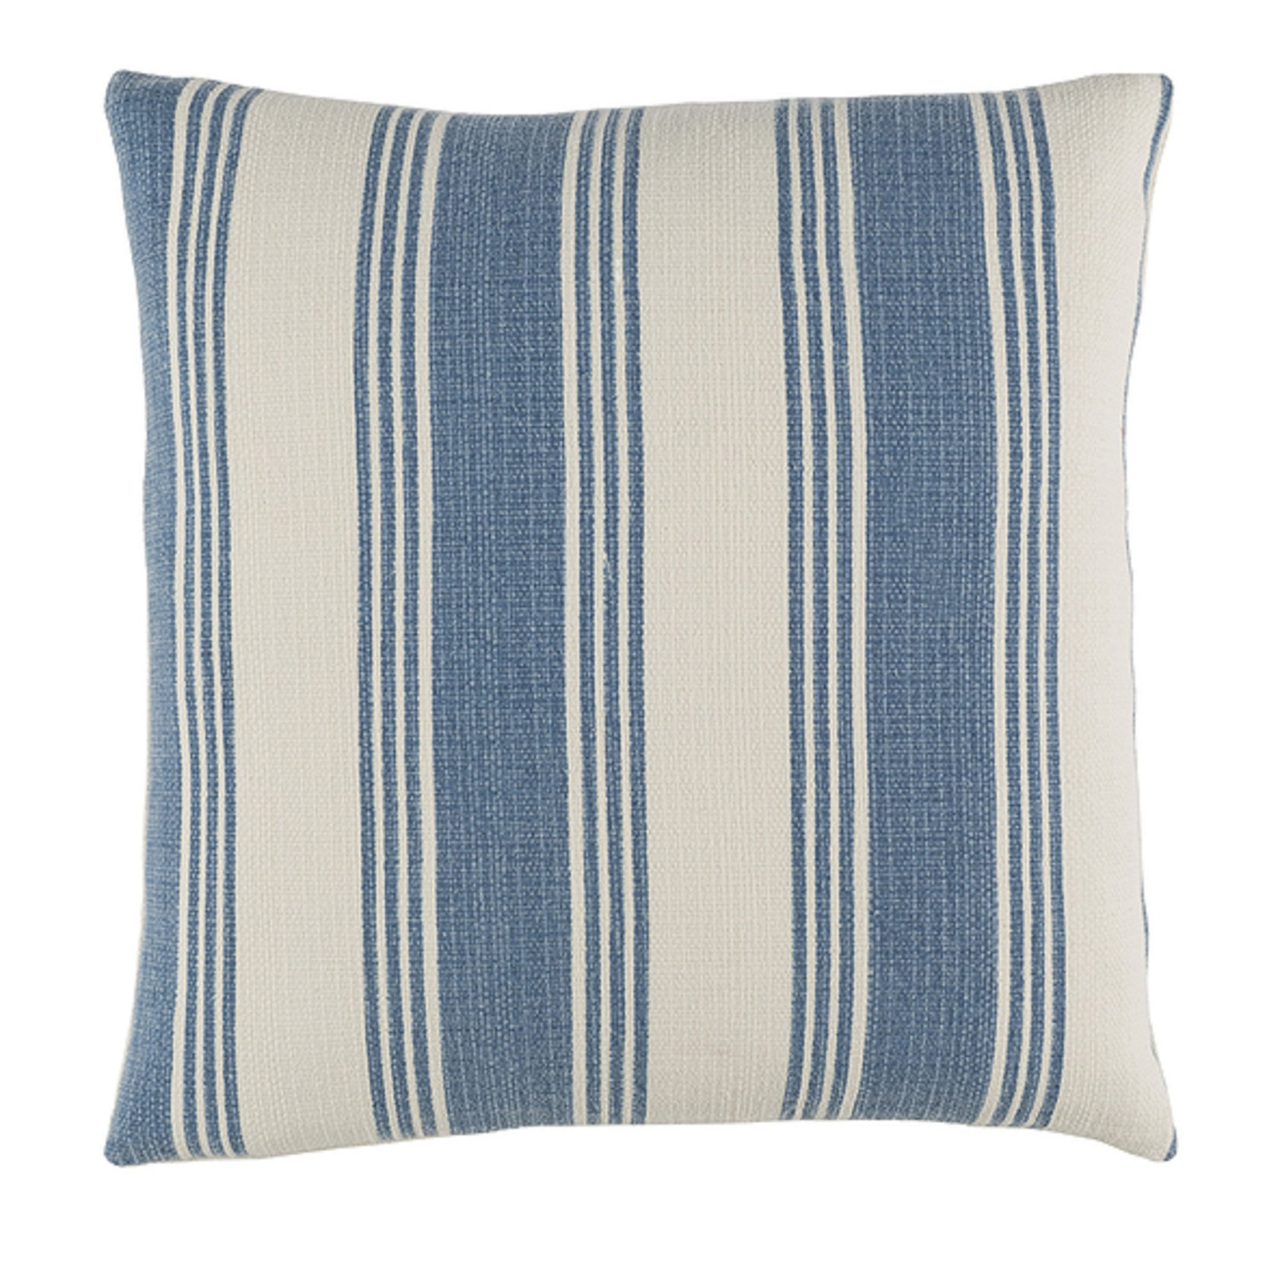 Steel Blue Throw Pillows : 20